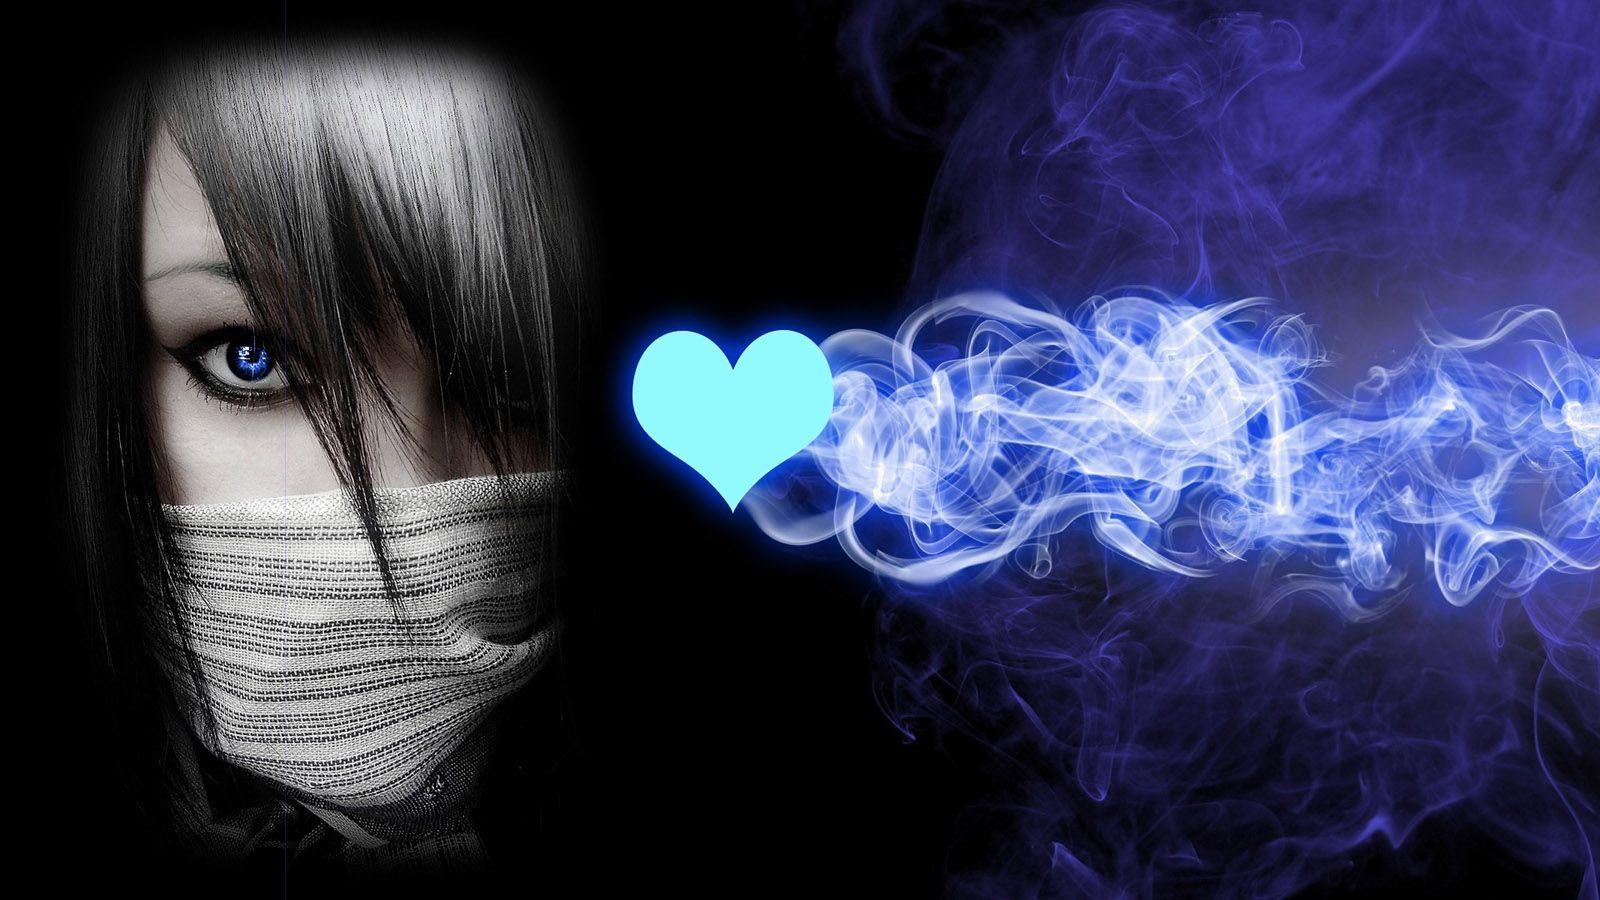 Love Wallpaper Girl N Boy : Emo Love Wallpapers 2016 - Wallpaper cave